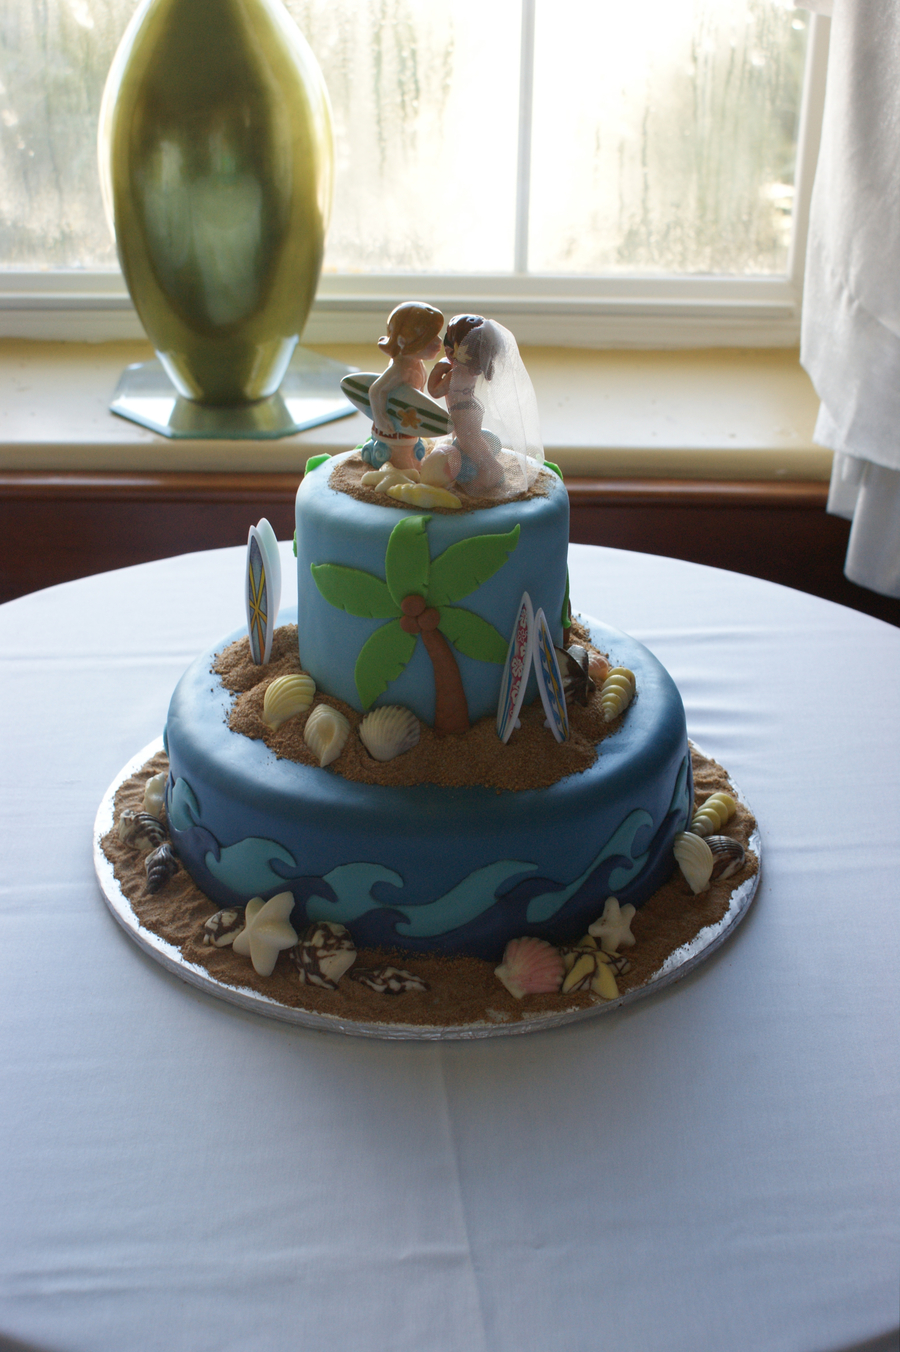 Beach Wedding on Cake Central